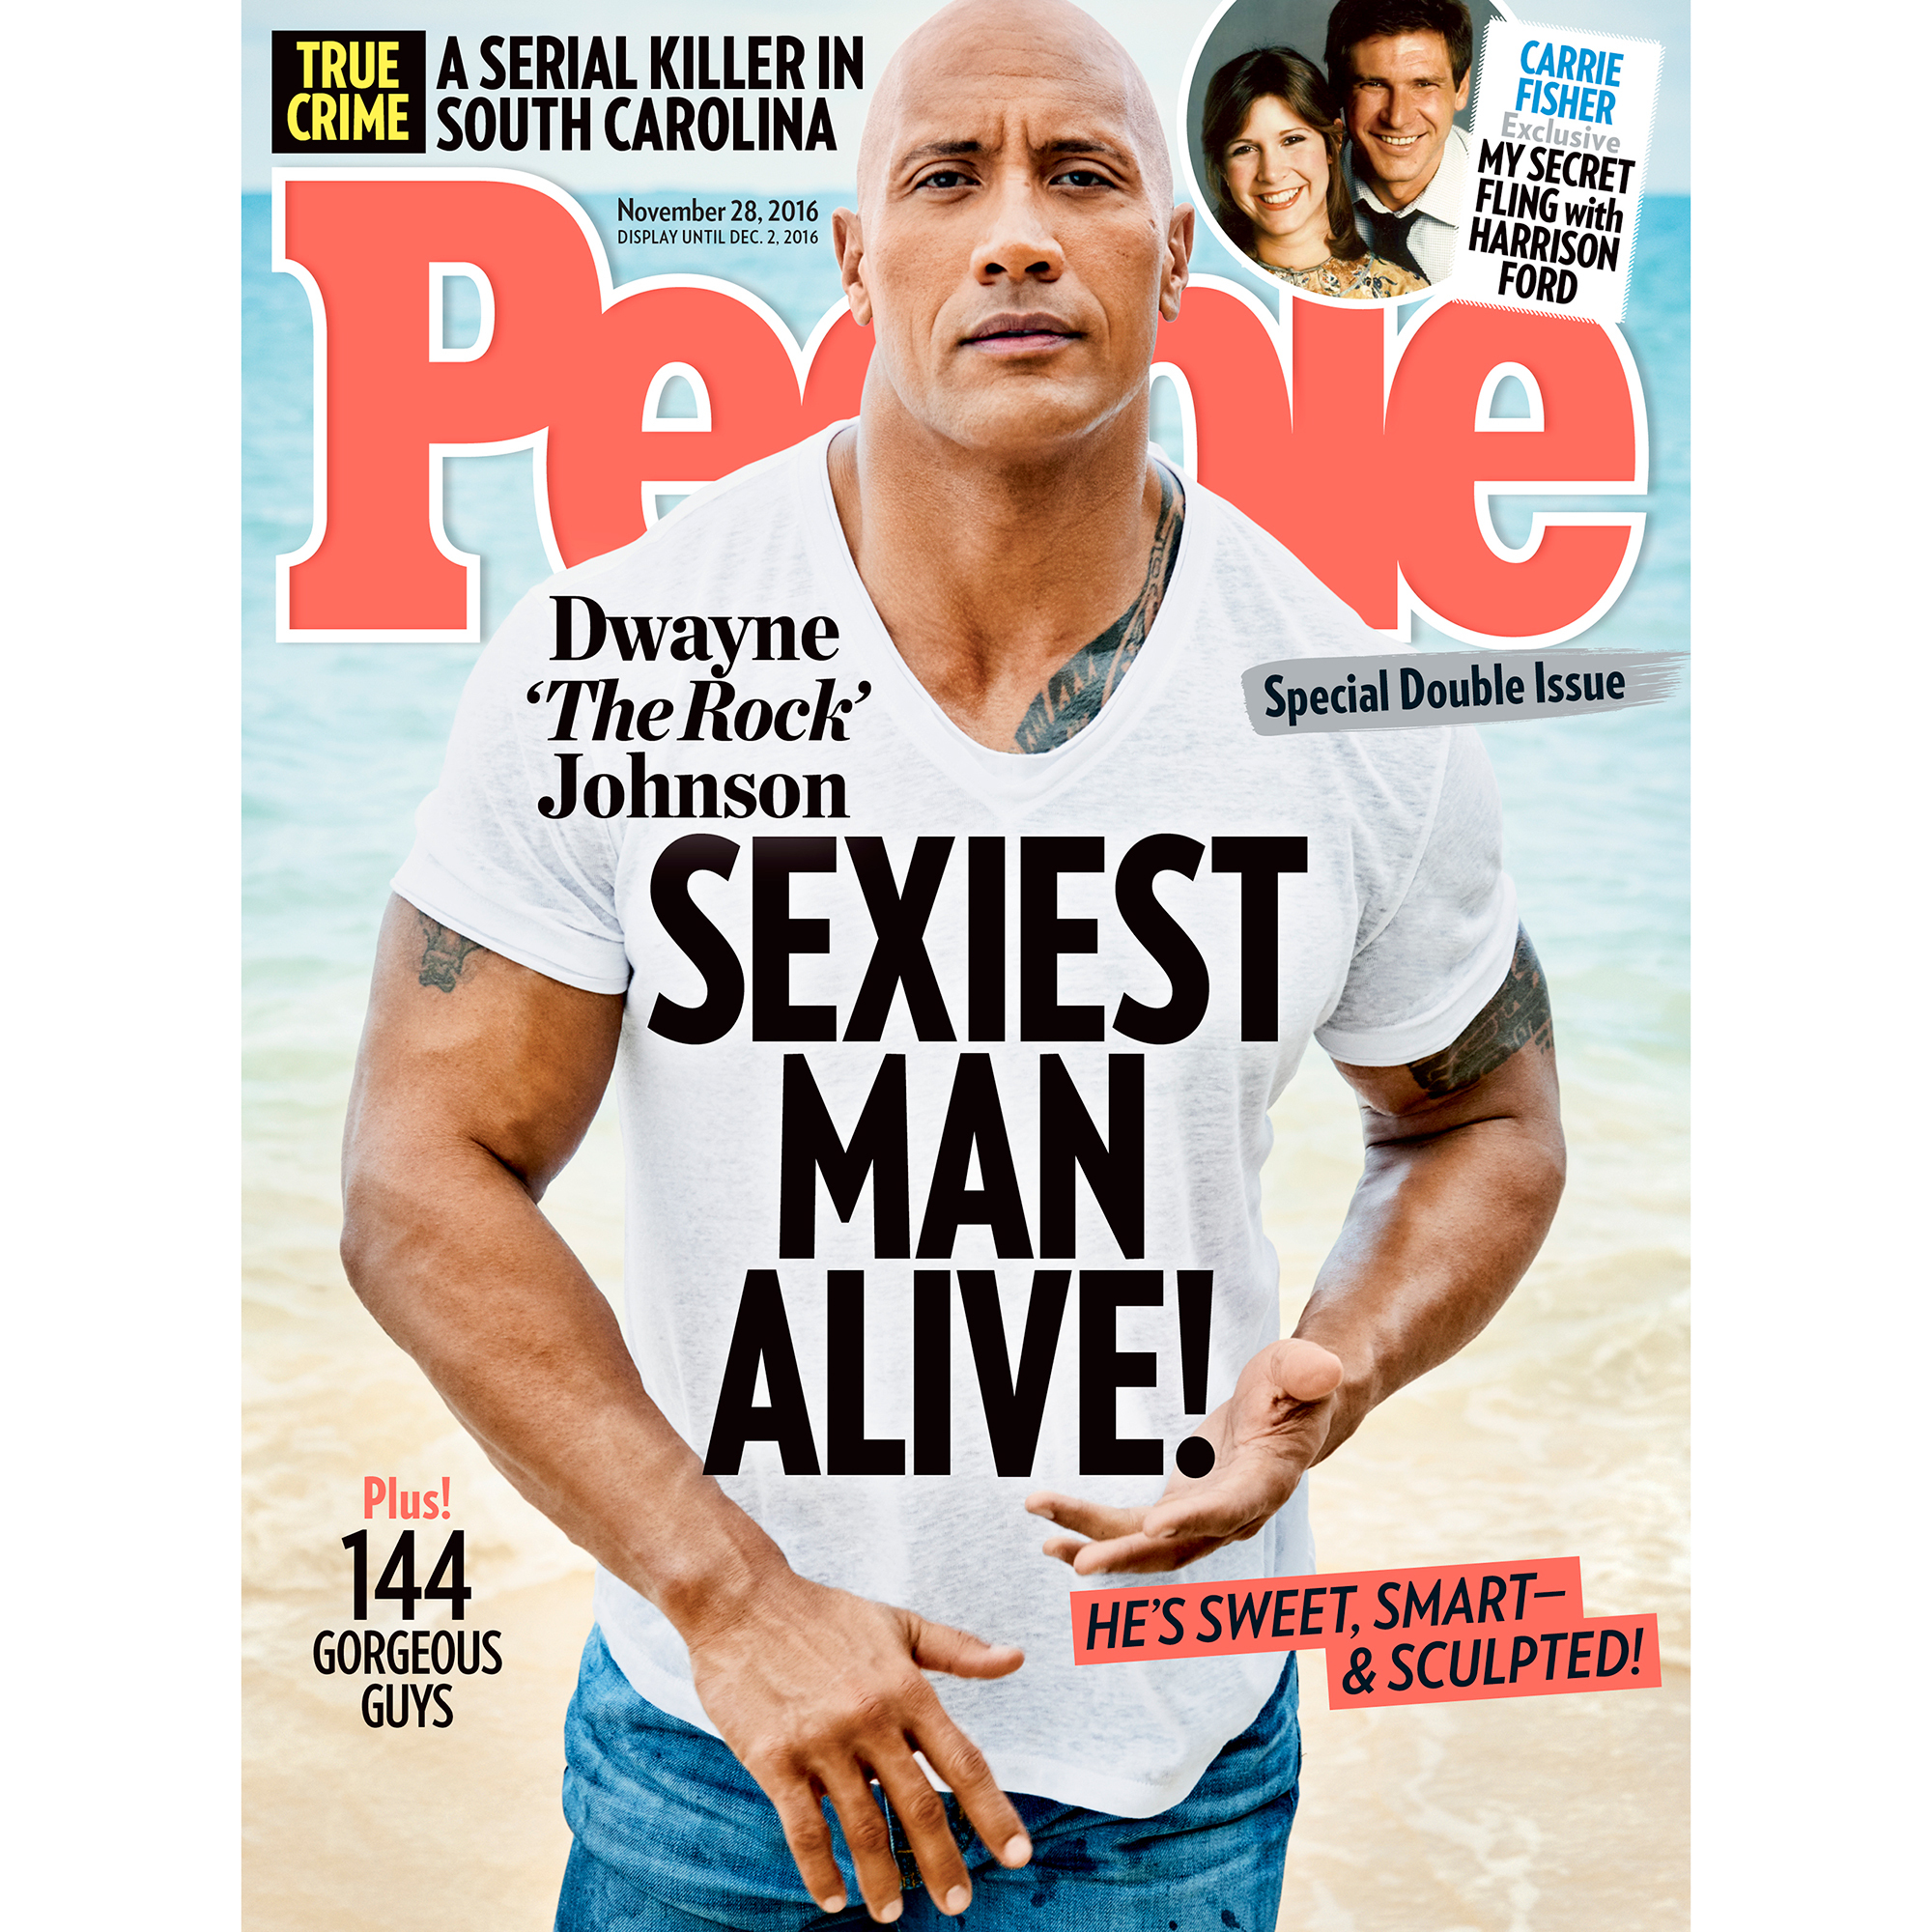 Dwayne Johnson, People's Sexiest Man Alive,' Sounded Damn Presidential in His Latest Interview